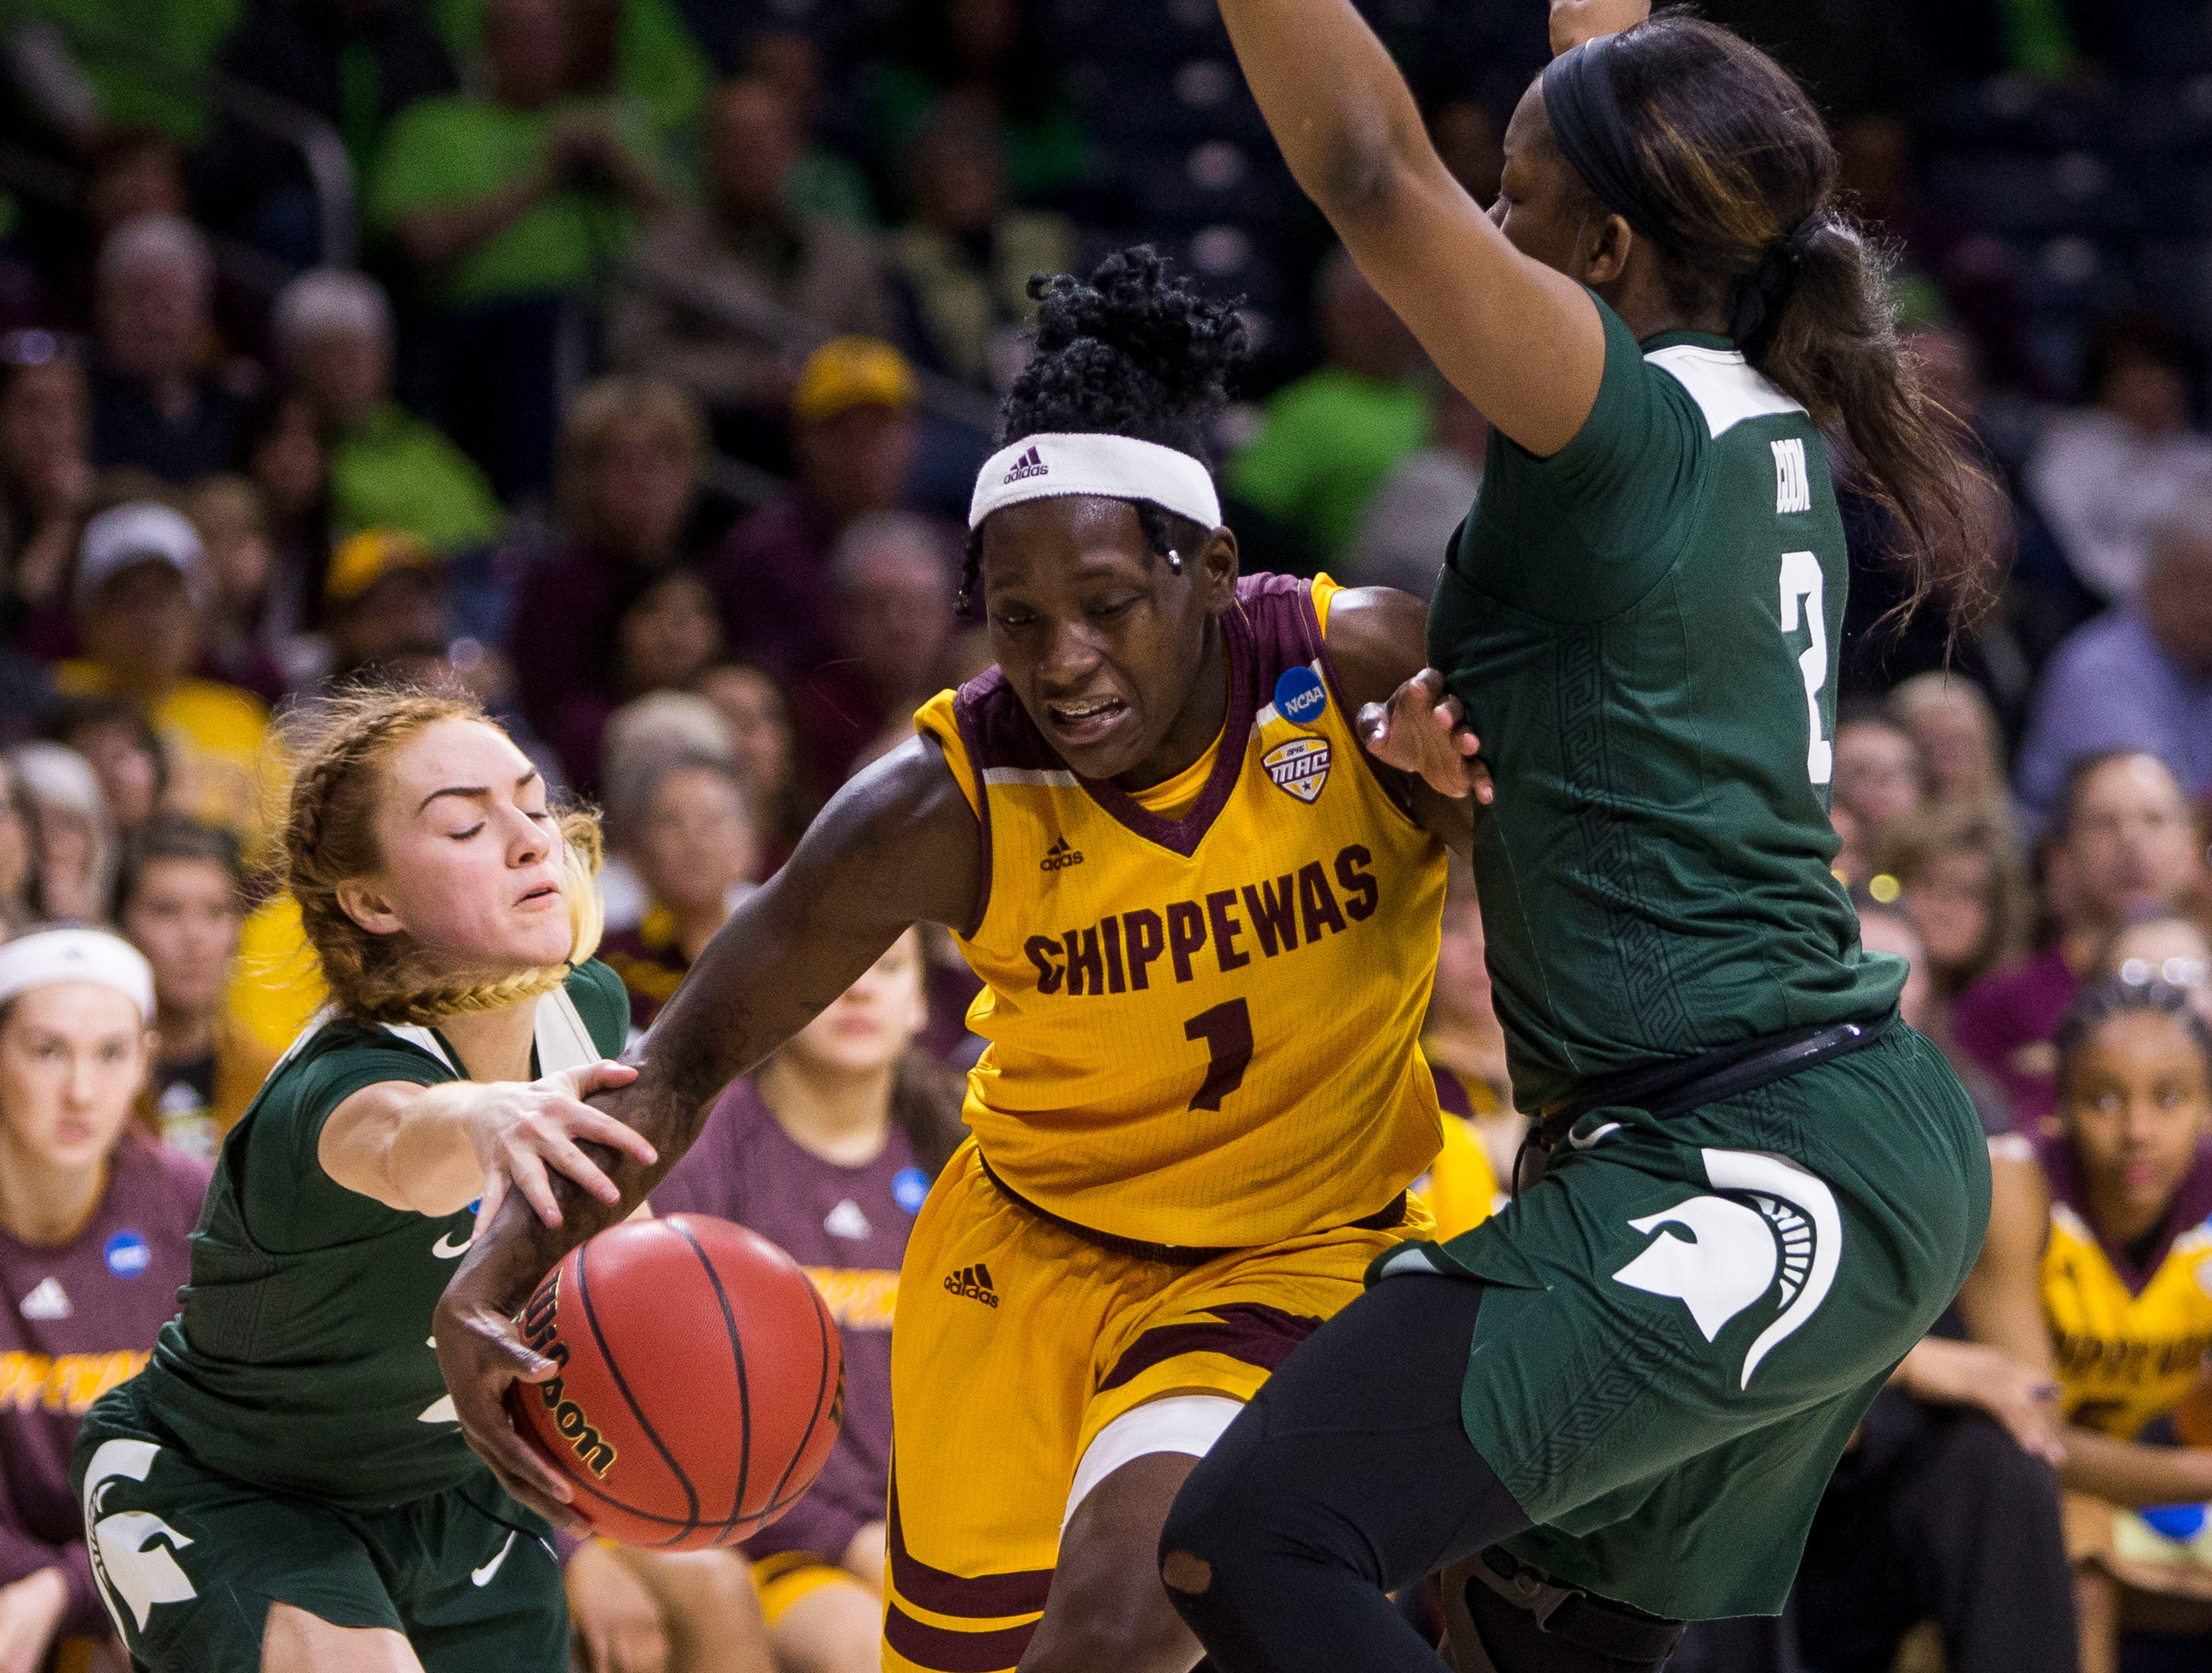 Central Michigan's Micaela Kelly (1) tries to drive between Michigan State's Taryn McCutcheon, left, and Mardrekia Cook during a first-round game in the NCAA women's college basketball tournament in South Bend, Ind., Saturday, March 23, 2019. Michigan State won 88-87.